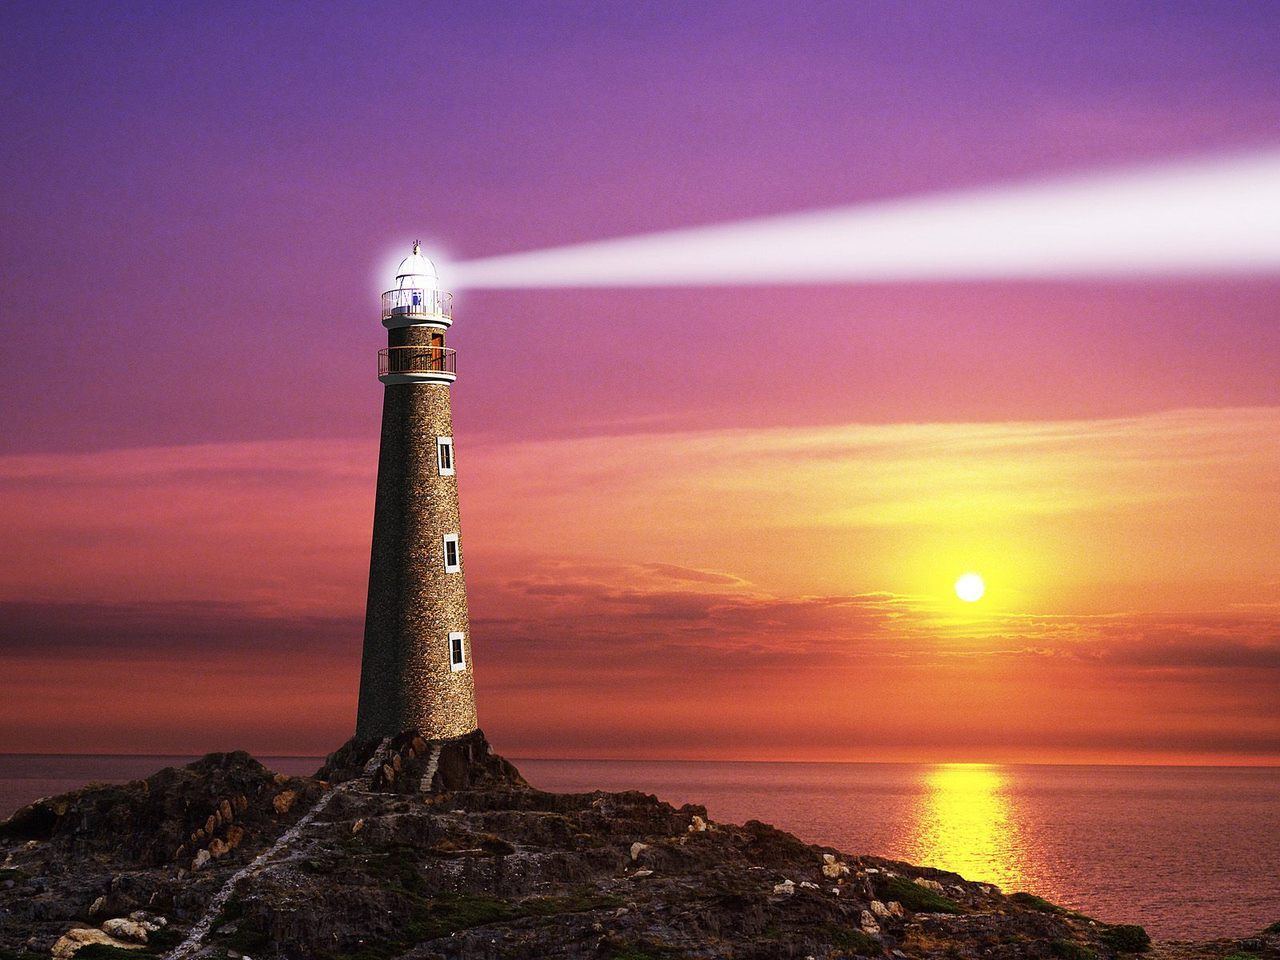 "FARI — LIGHTHOUSES _______________________________  Ruote Latina Ruote Italia Il portale ospita aziende, uomini e piloti e vuol essere un luogo di incontro tra quanti vivono le ""ruote"", qualunque esse siano, con passione, consci del valore che l'invenzione della ruota ha rappresentato per l'umanità tutta. Seguiteci con attenzione, non ve ne pentirete.  Wheels Latina      Wheels  Italy The portal hosts companies, pilots and men and wishes to become a meeting place between those who live the ""wheels"", whatever they are, with passion, conscious of the value that the invention of the wheel has been for all of humanity. Follow carefully, you will not regret. Please Follow: http://www.ruotelatina.com ruotelatina@gmail.com"